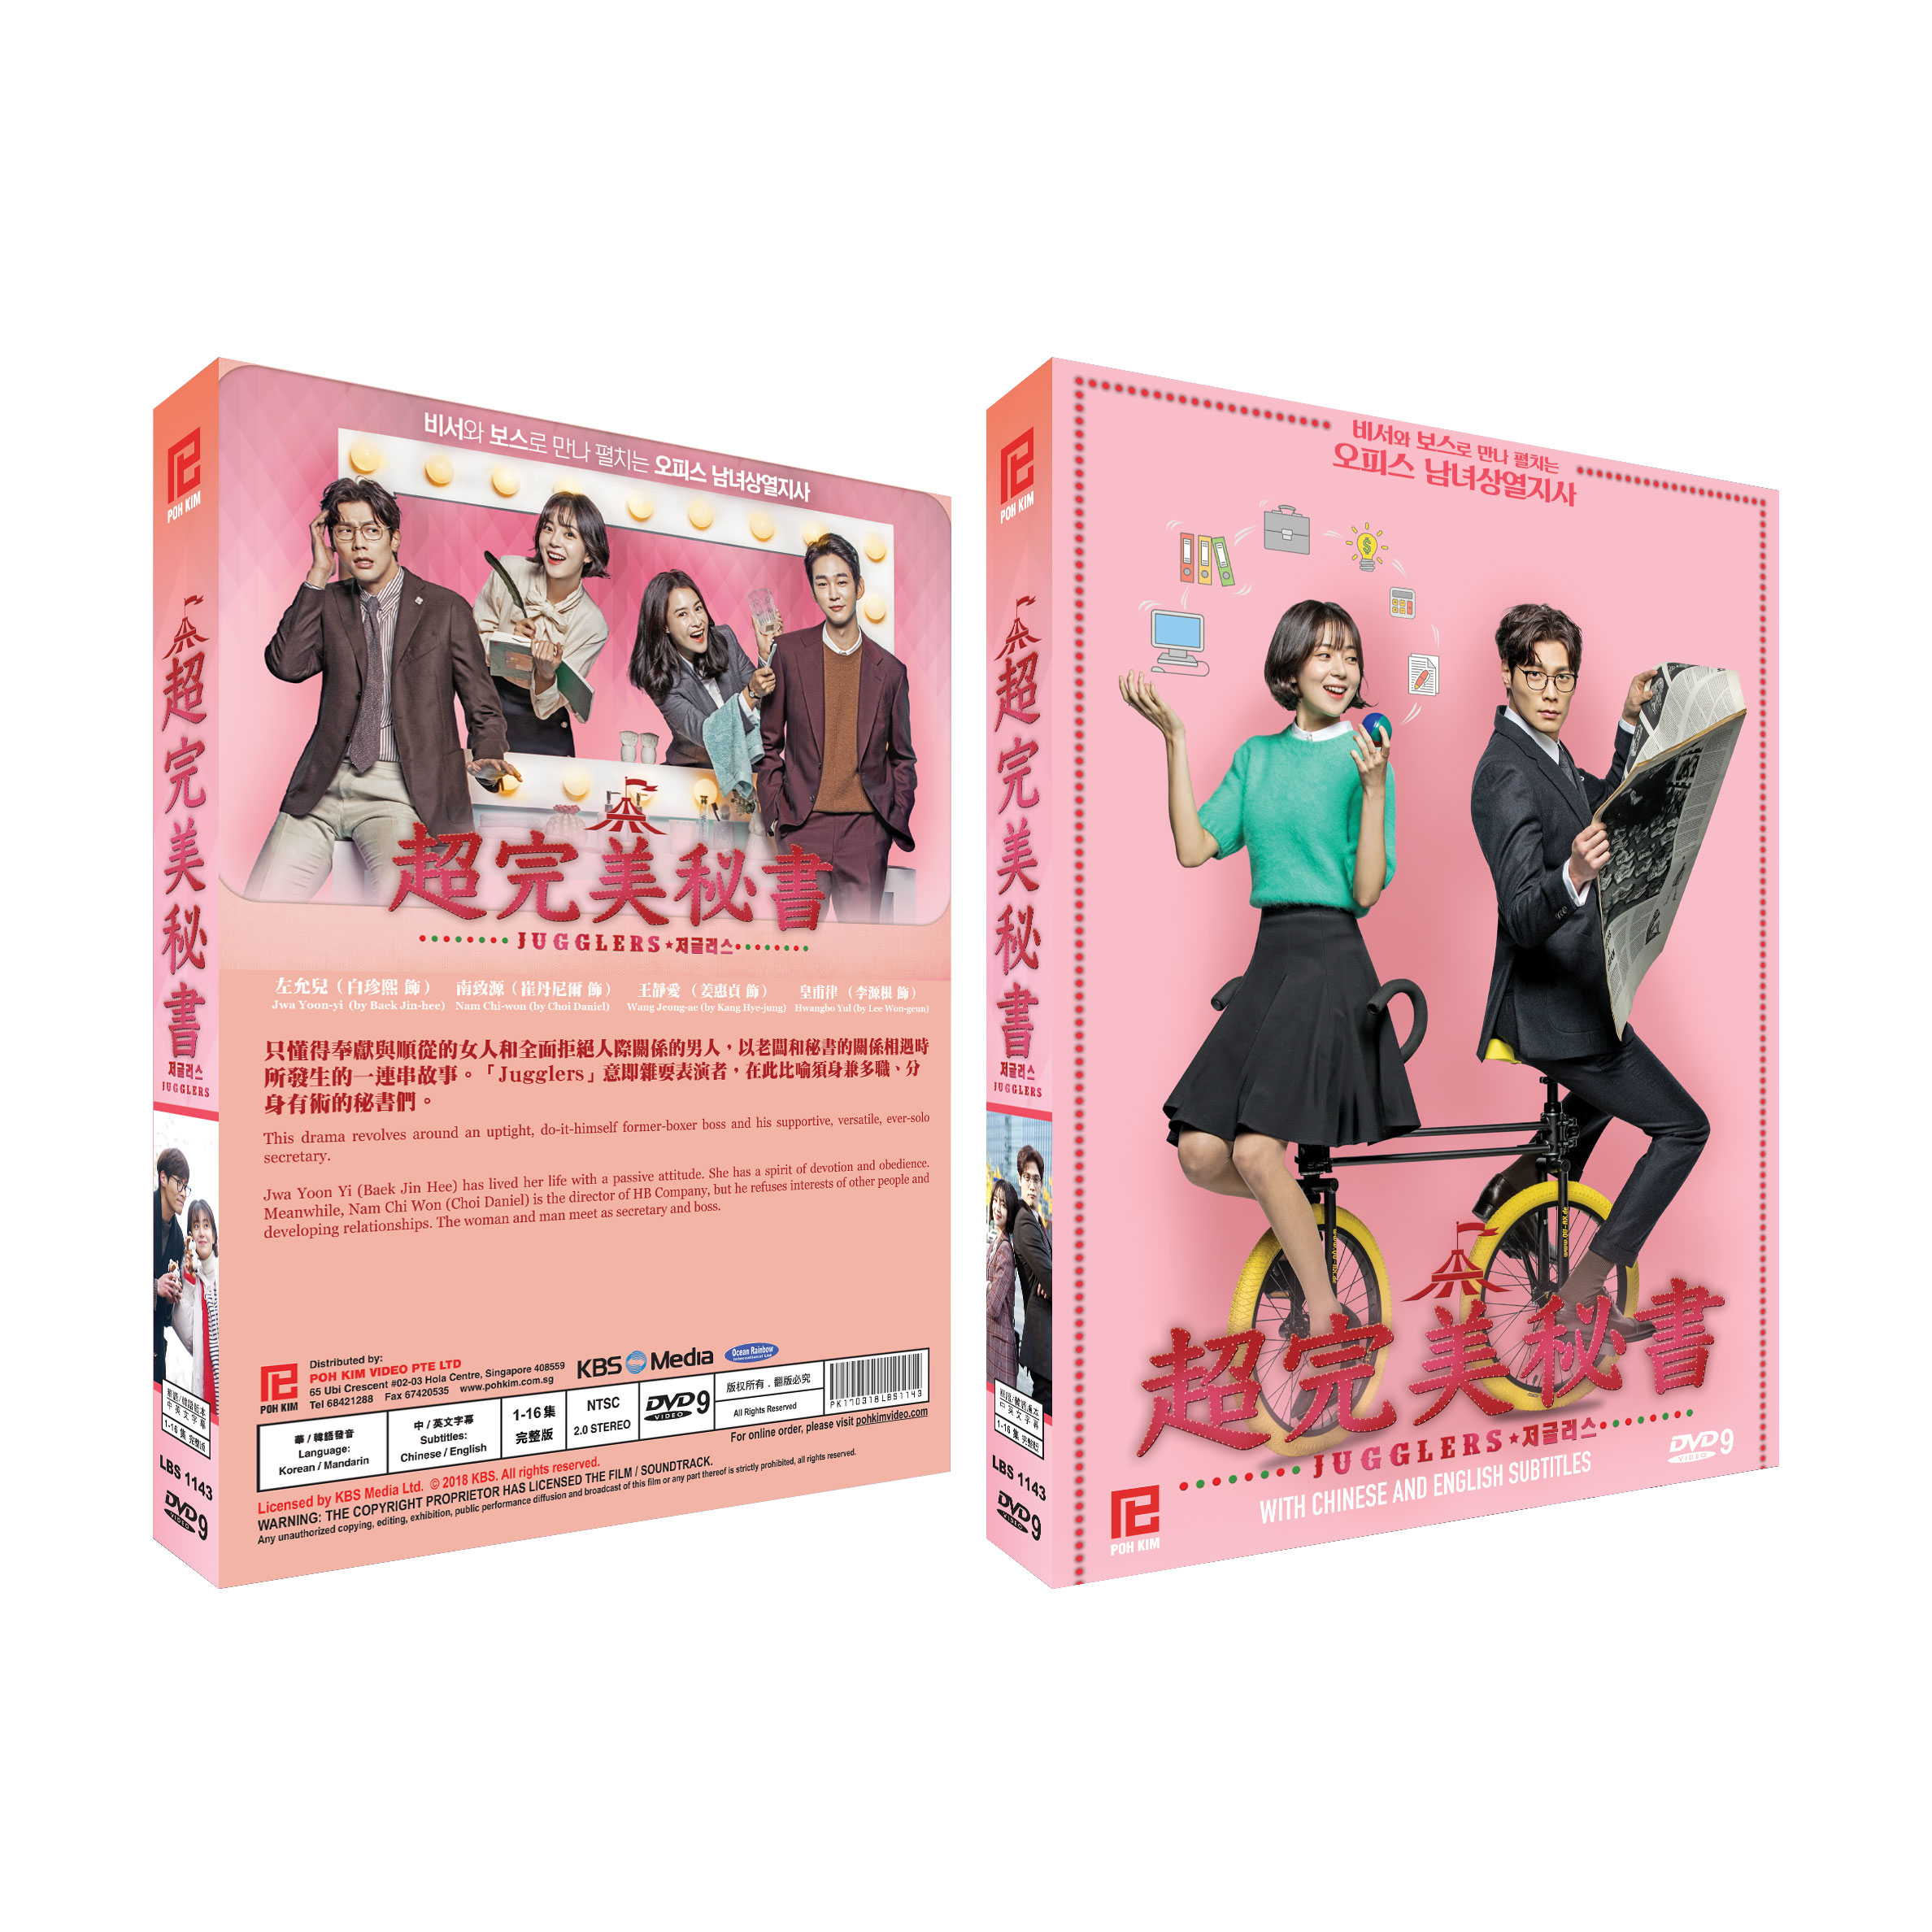 超完美秘书 저글러스 Jugglers (Korean Drama DVD) (Collector's Edition)